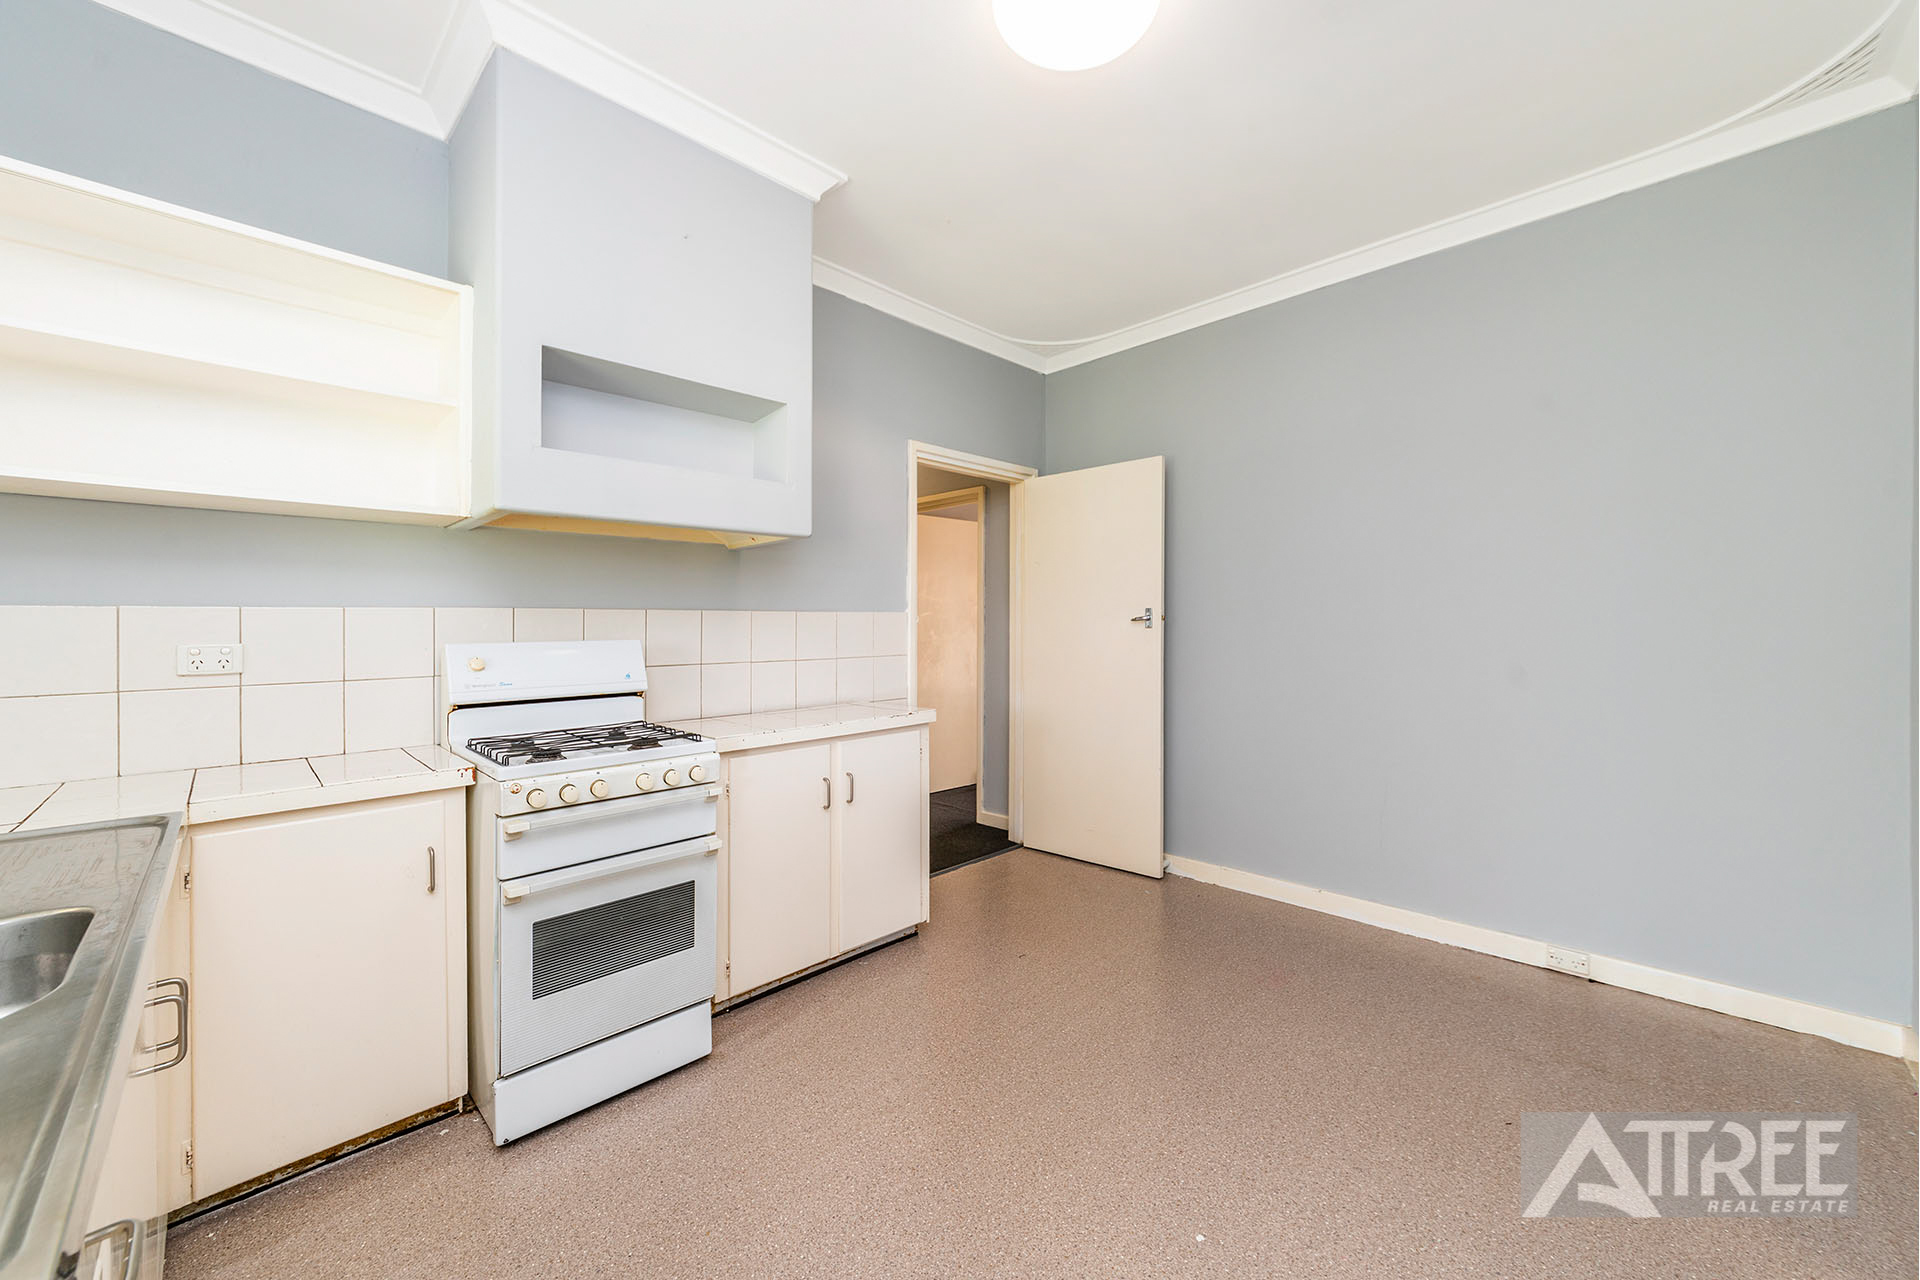 Property for sale in SEVILLE GROVE, 14 Piesse Place : Attree Real Estate